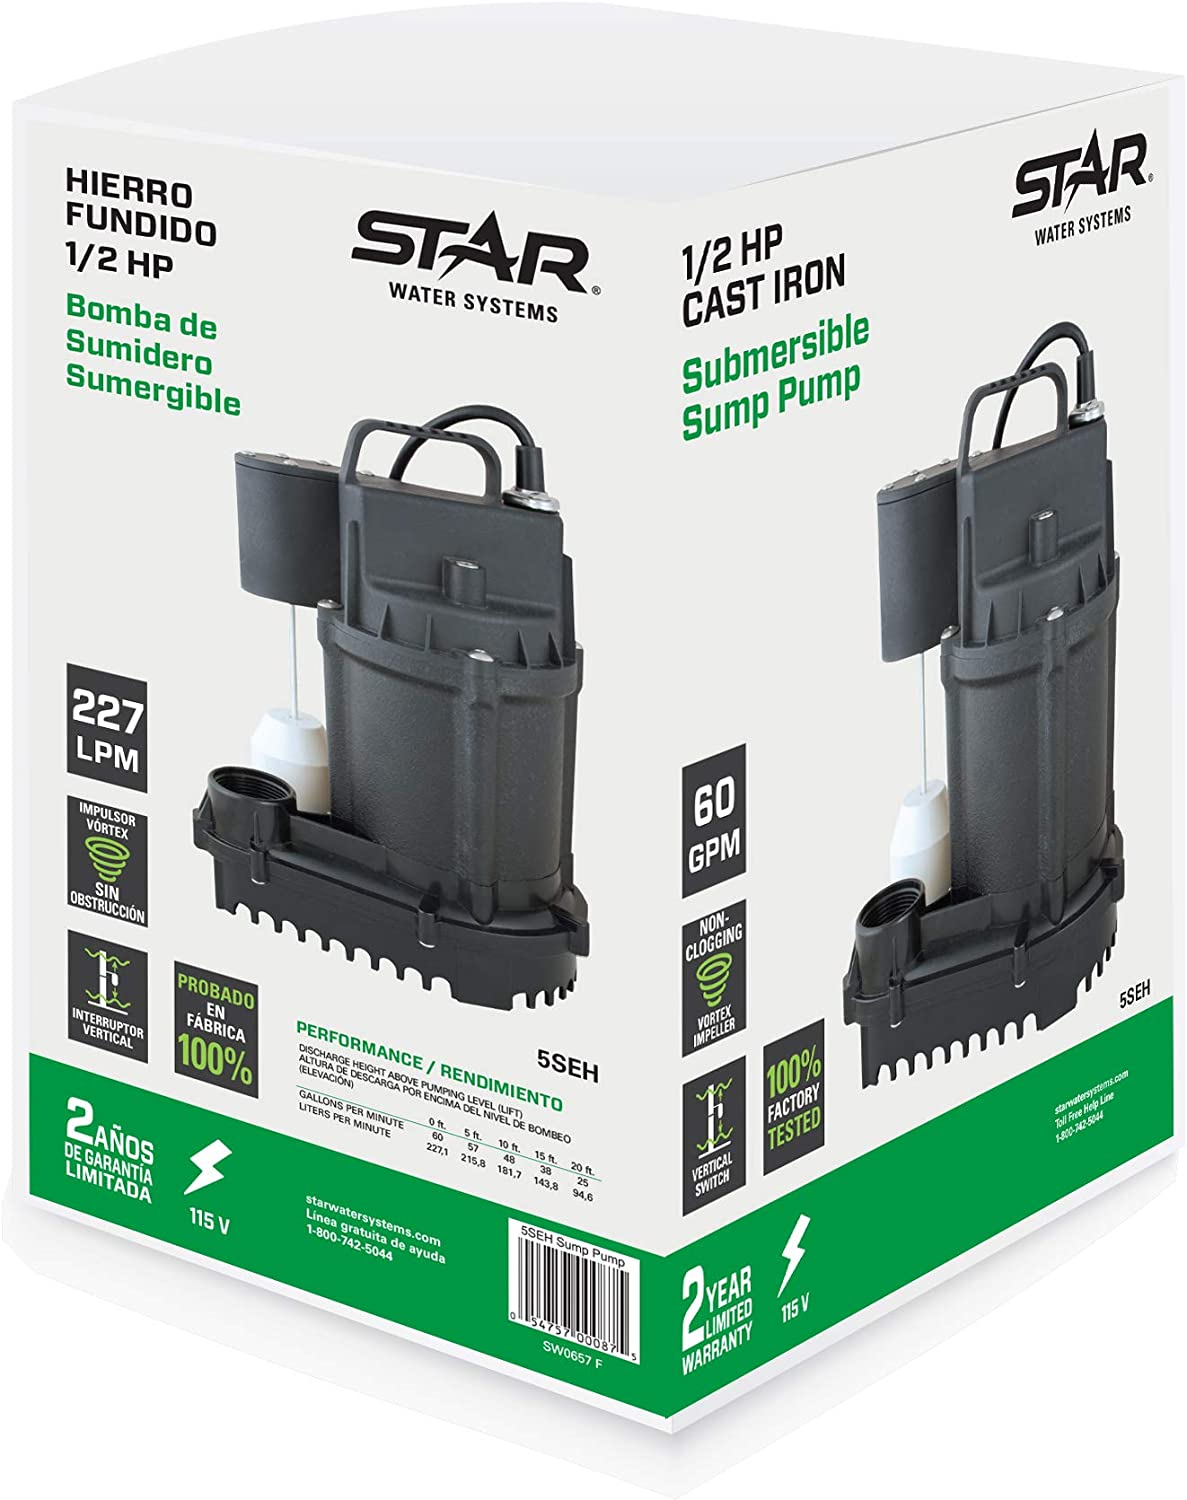 Star 5SEH 1/2 HP Cast Iron Submersible Sump Pump with Premium Vertical Float Switch (1-1/2